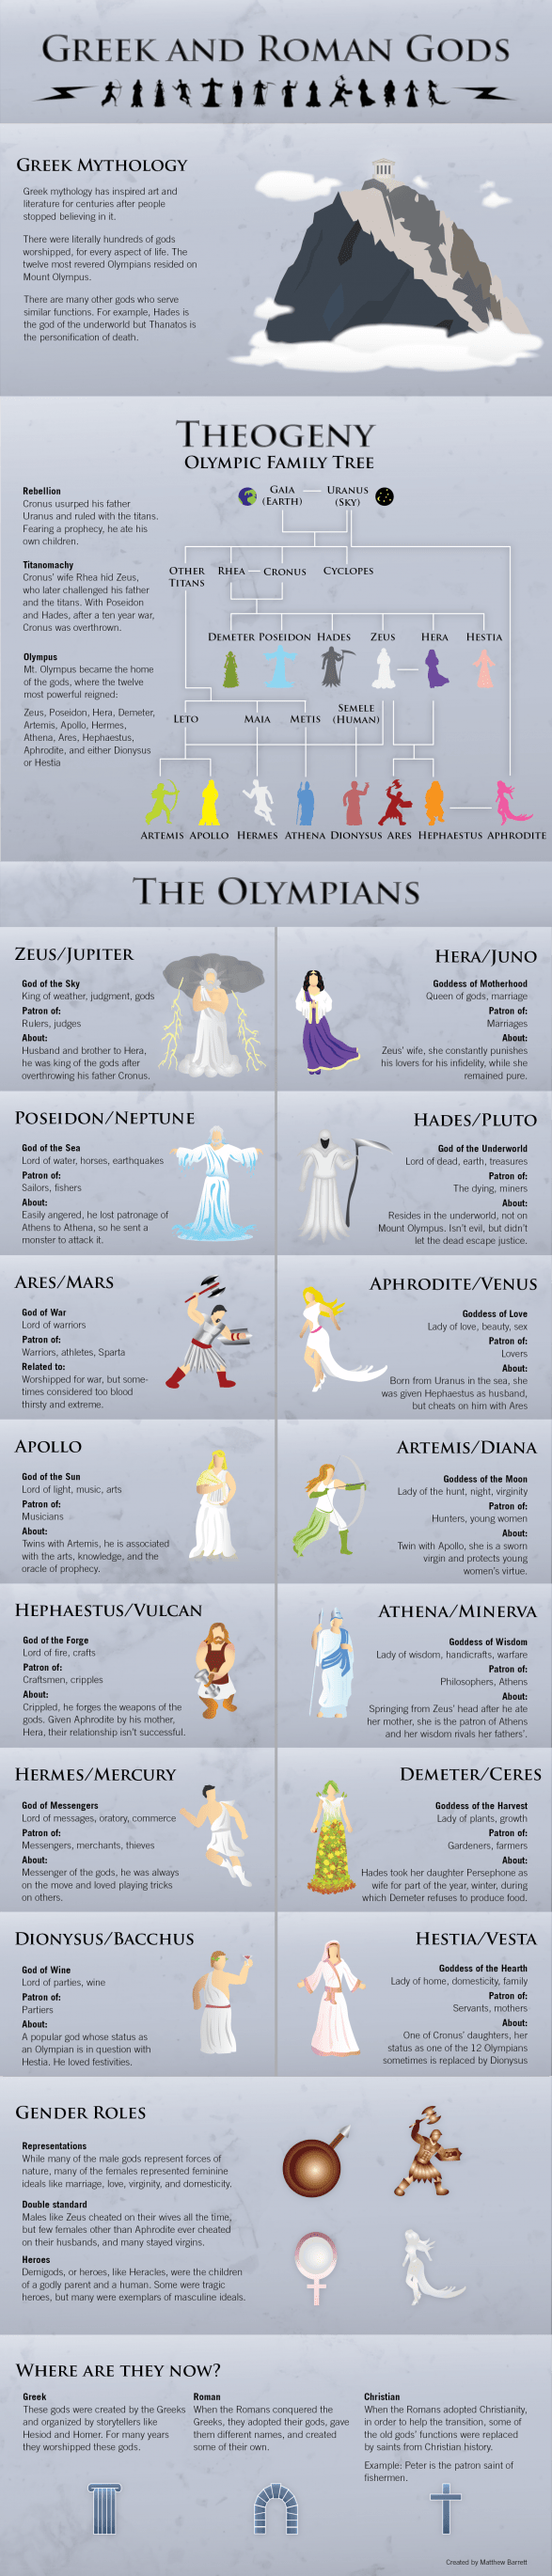 The Greek and Roman Gods